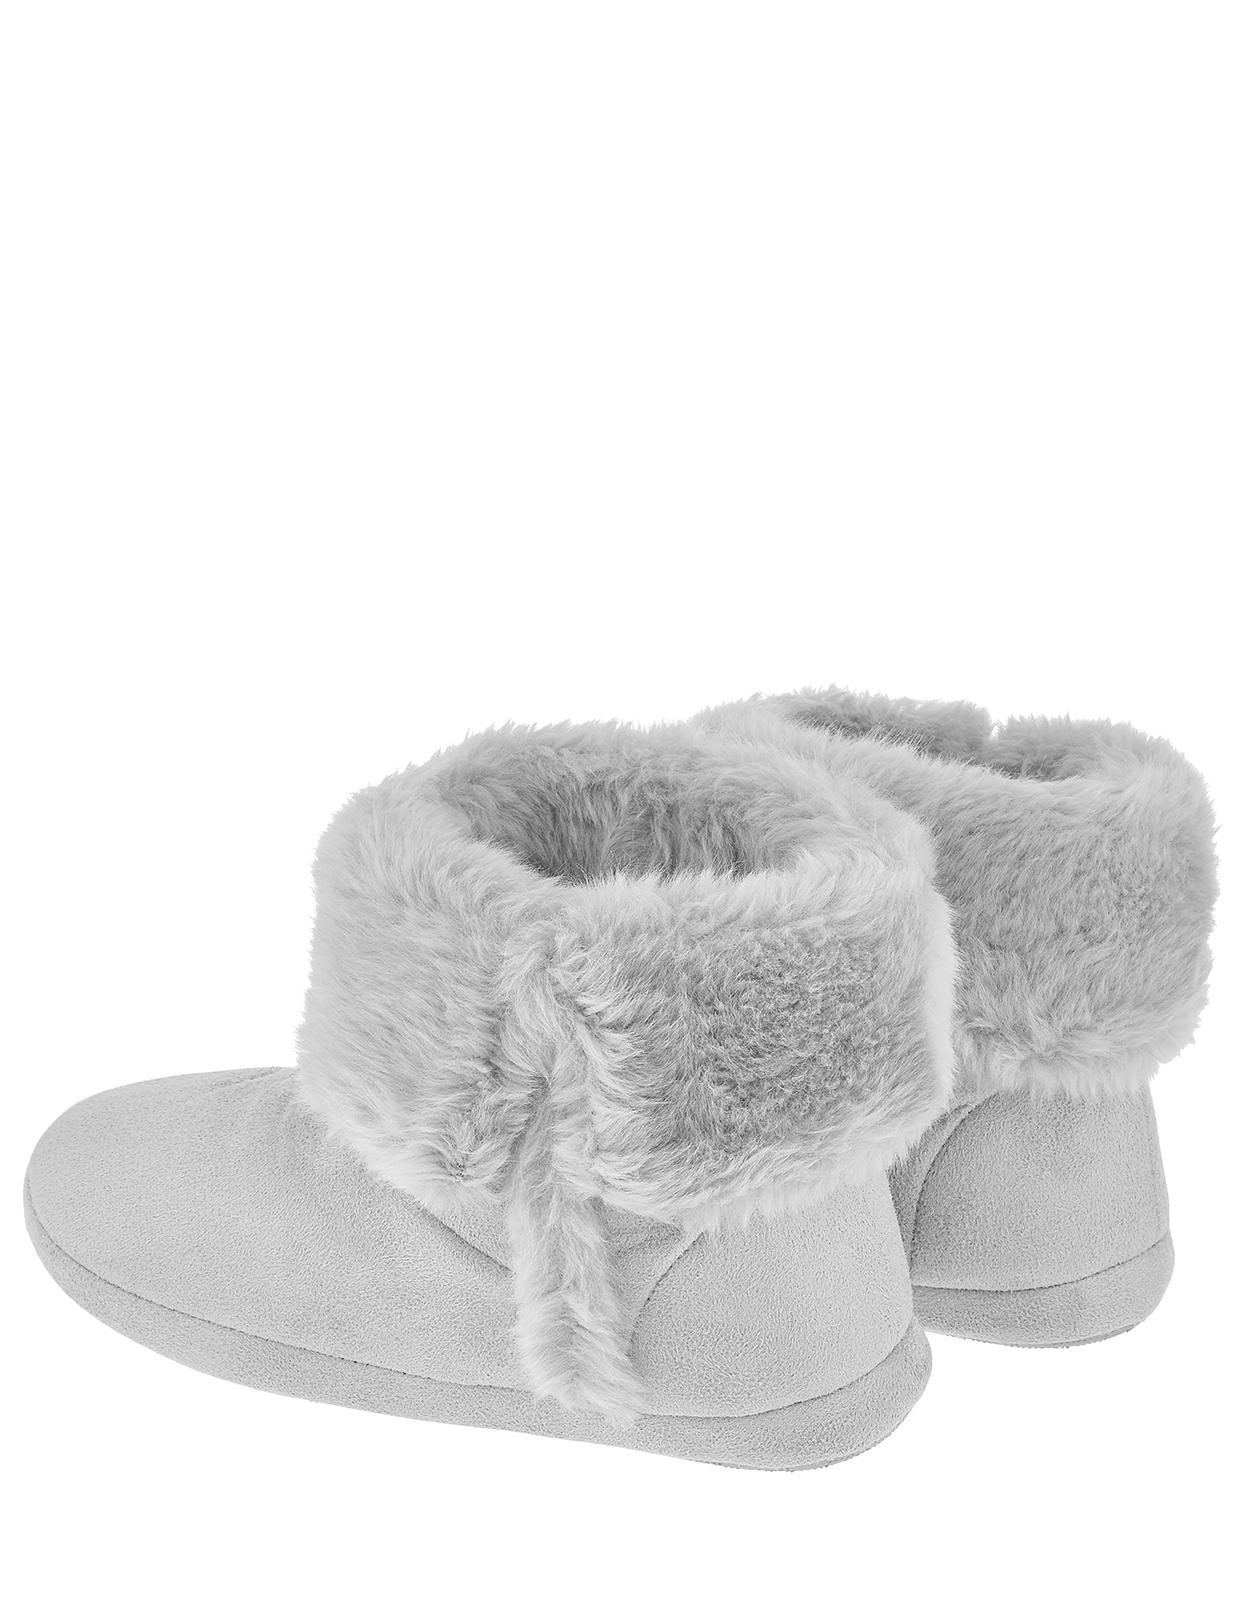 Accessorize Suedette Slipper Boots in Grey (Grey)